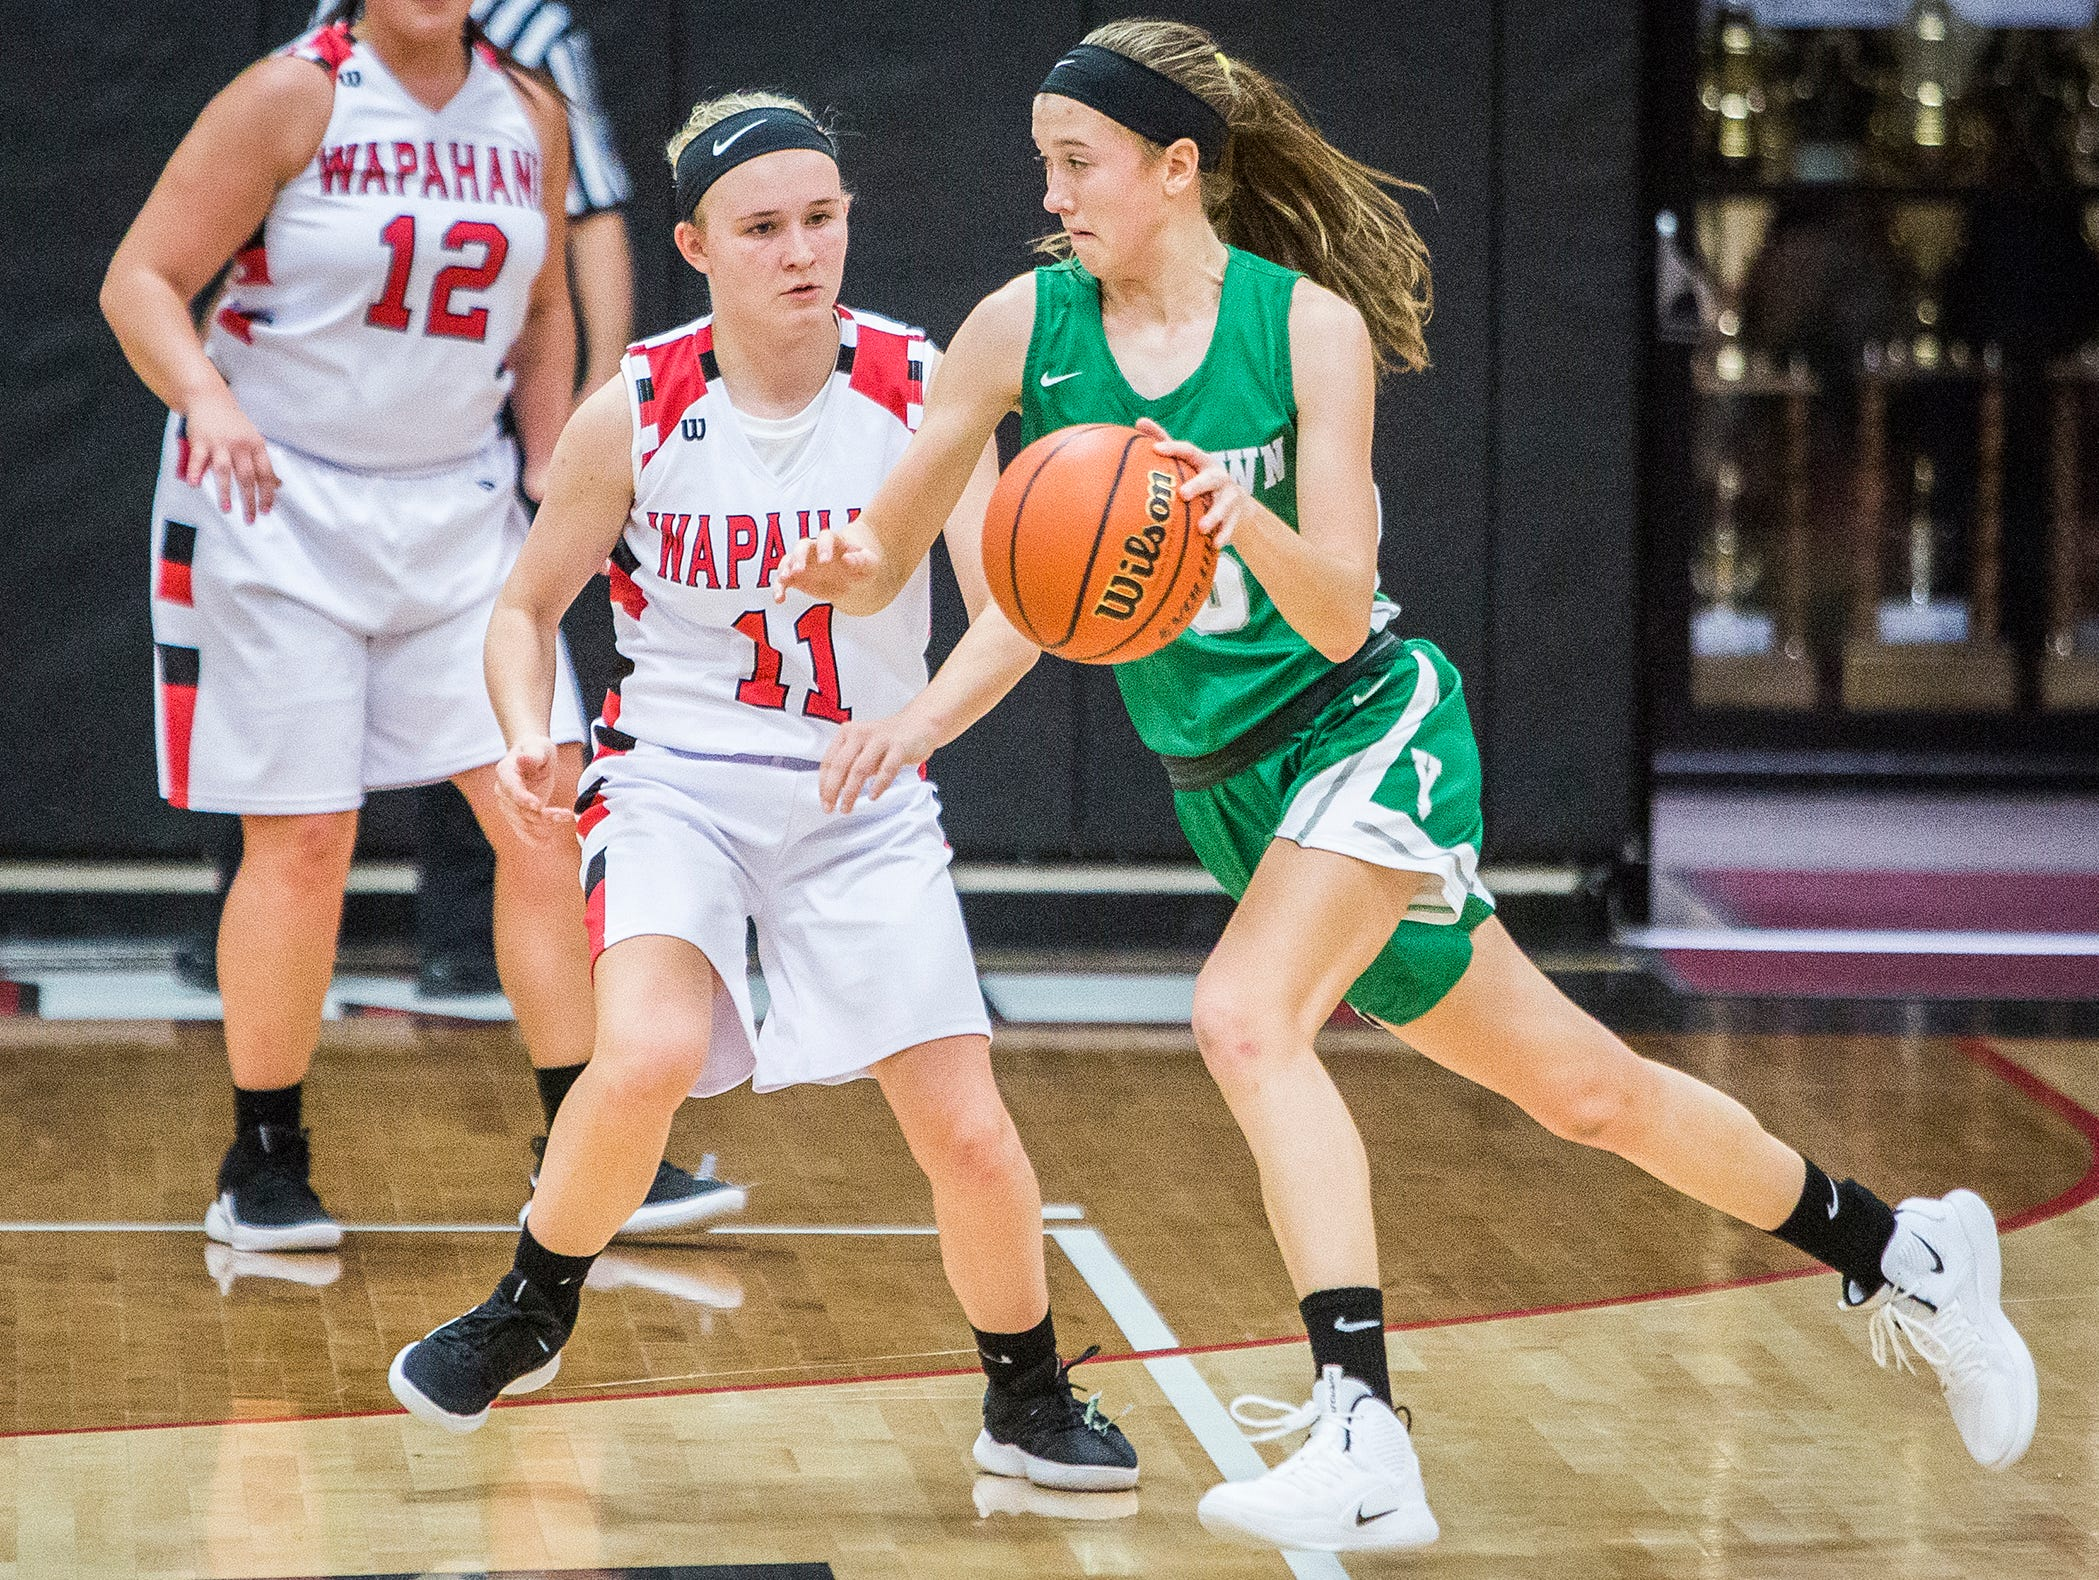 Yorktown's Lea Alexander dribbles the ball against Wapahani during their game at Wapahani High School Tuesday, Dec. 4, 2018.